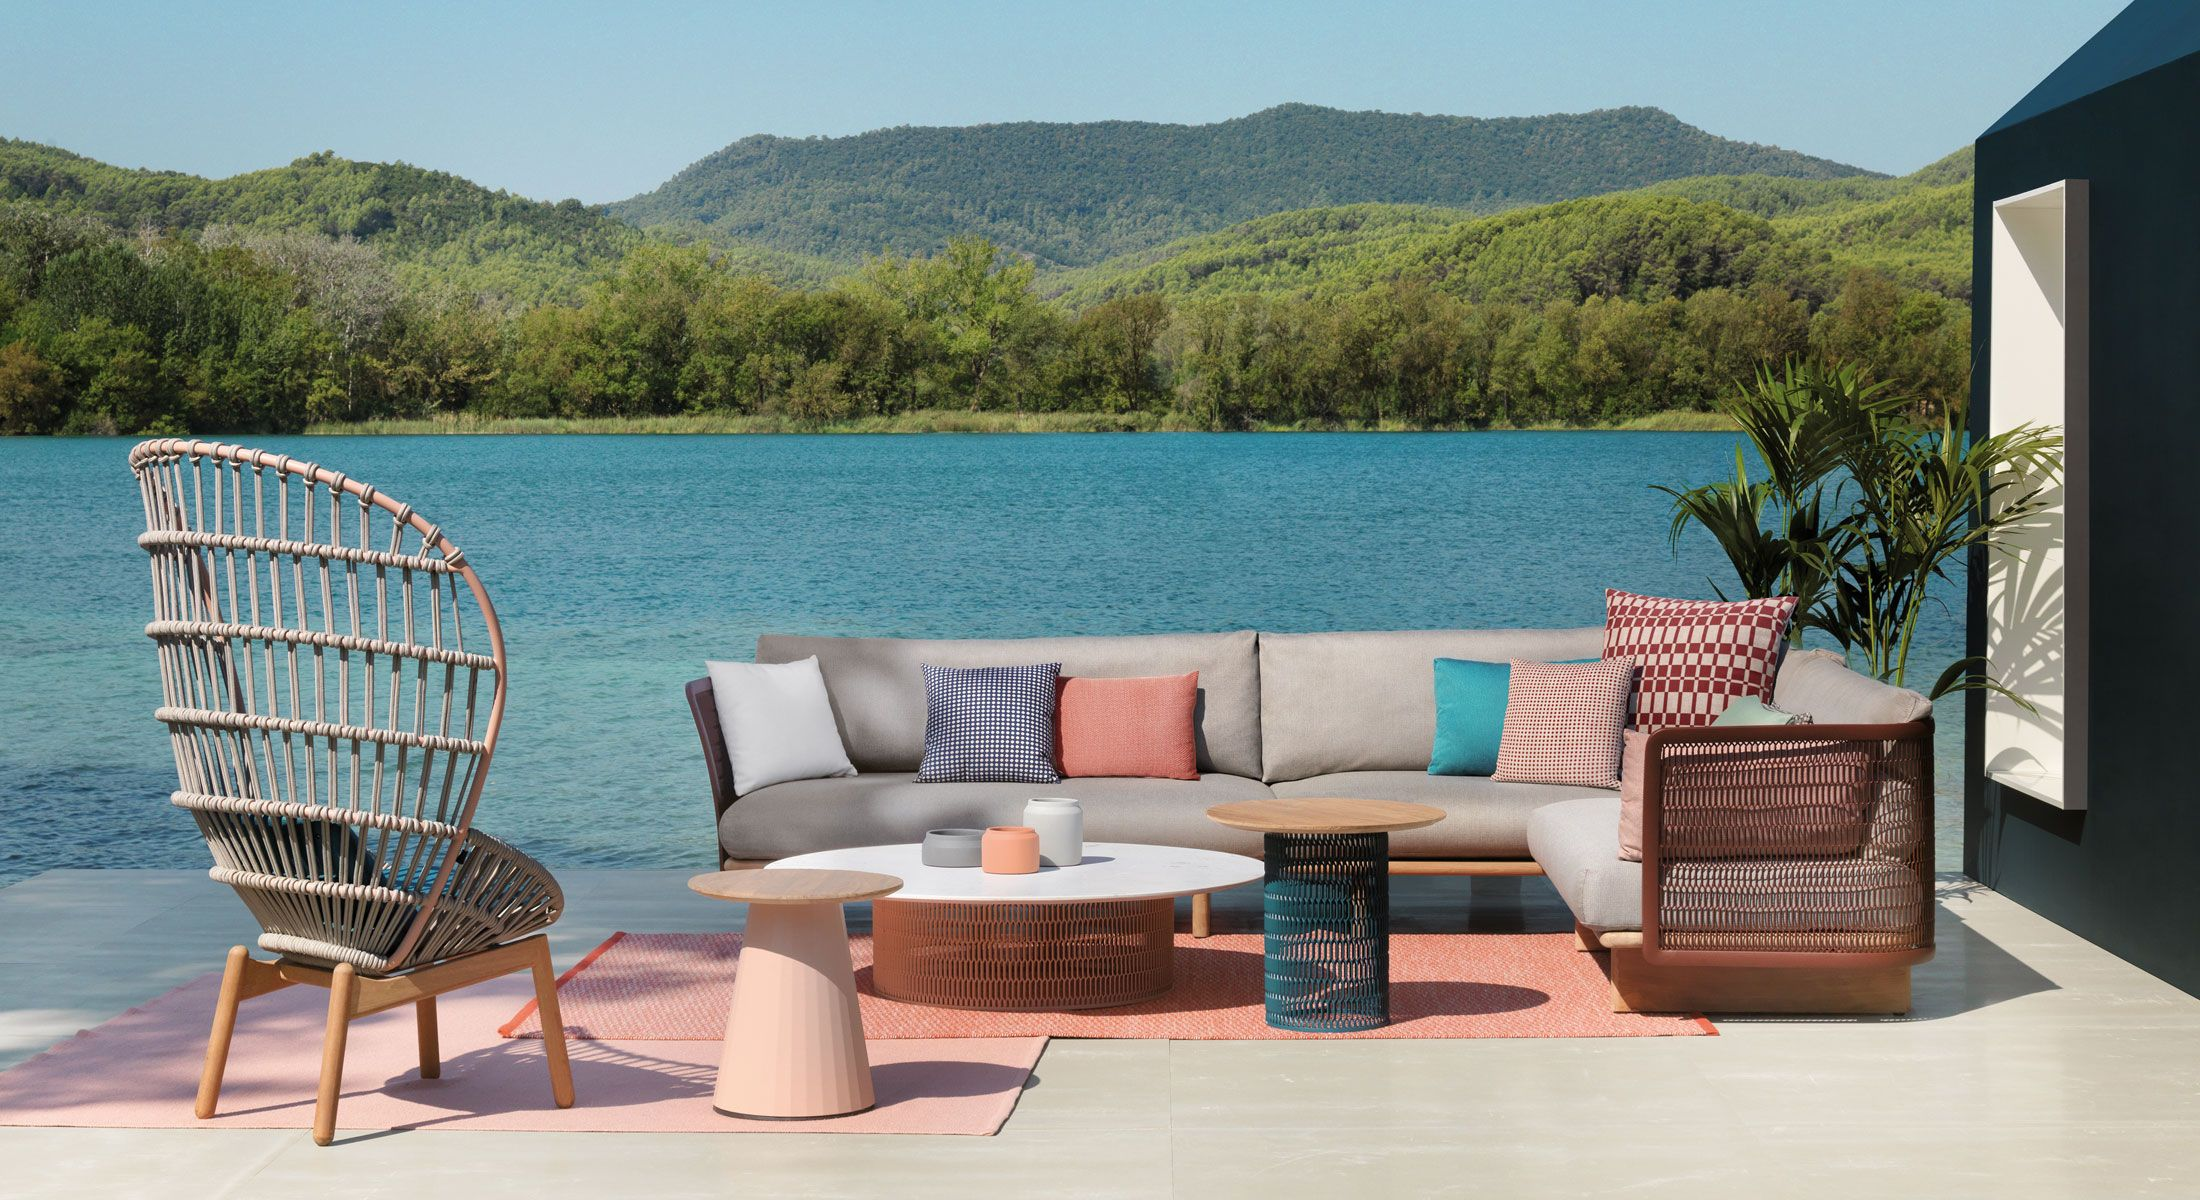 KETTAL | Outdoor Timeless Furniture (With images) | Luxury ... on Fine Living Patio Set id=43214